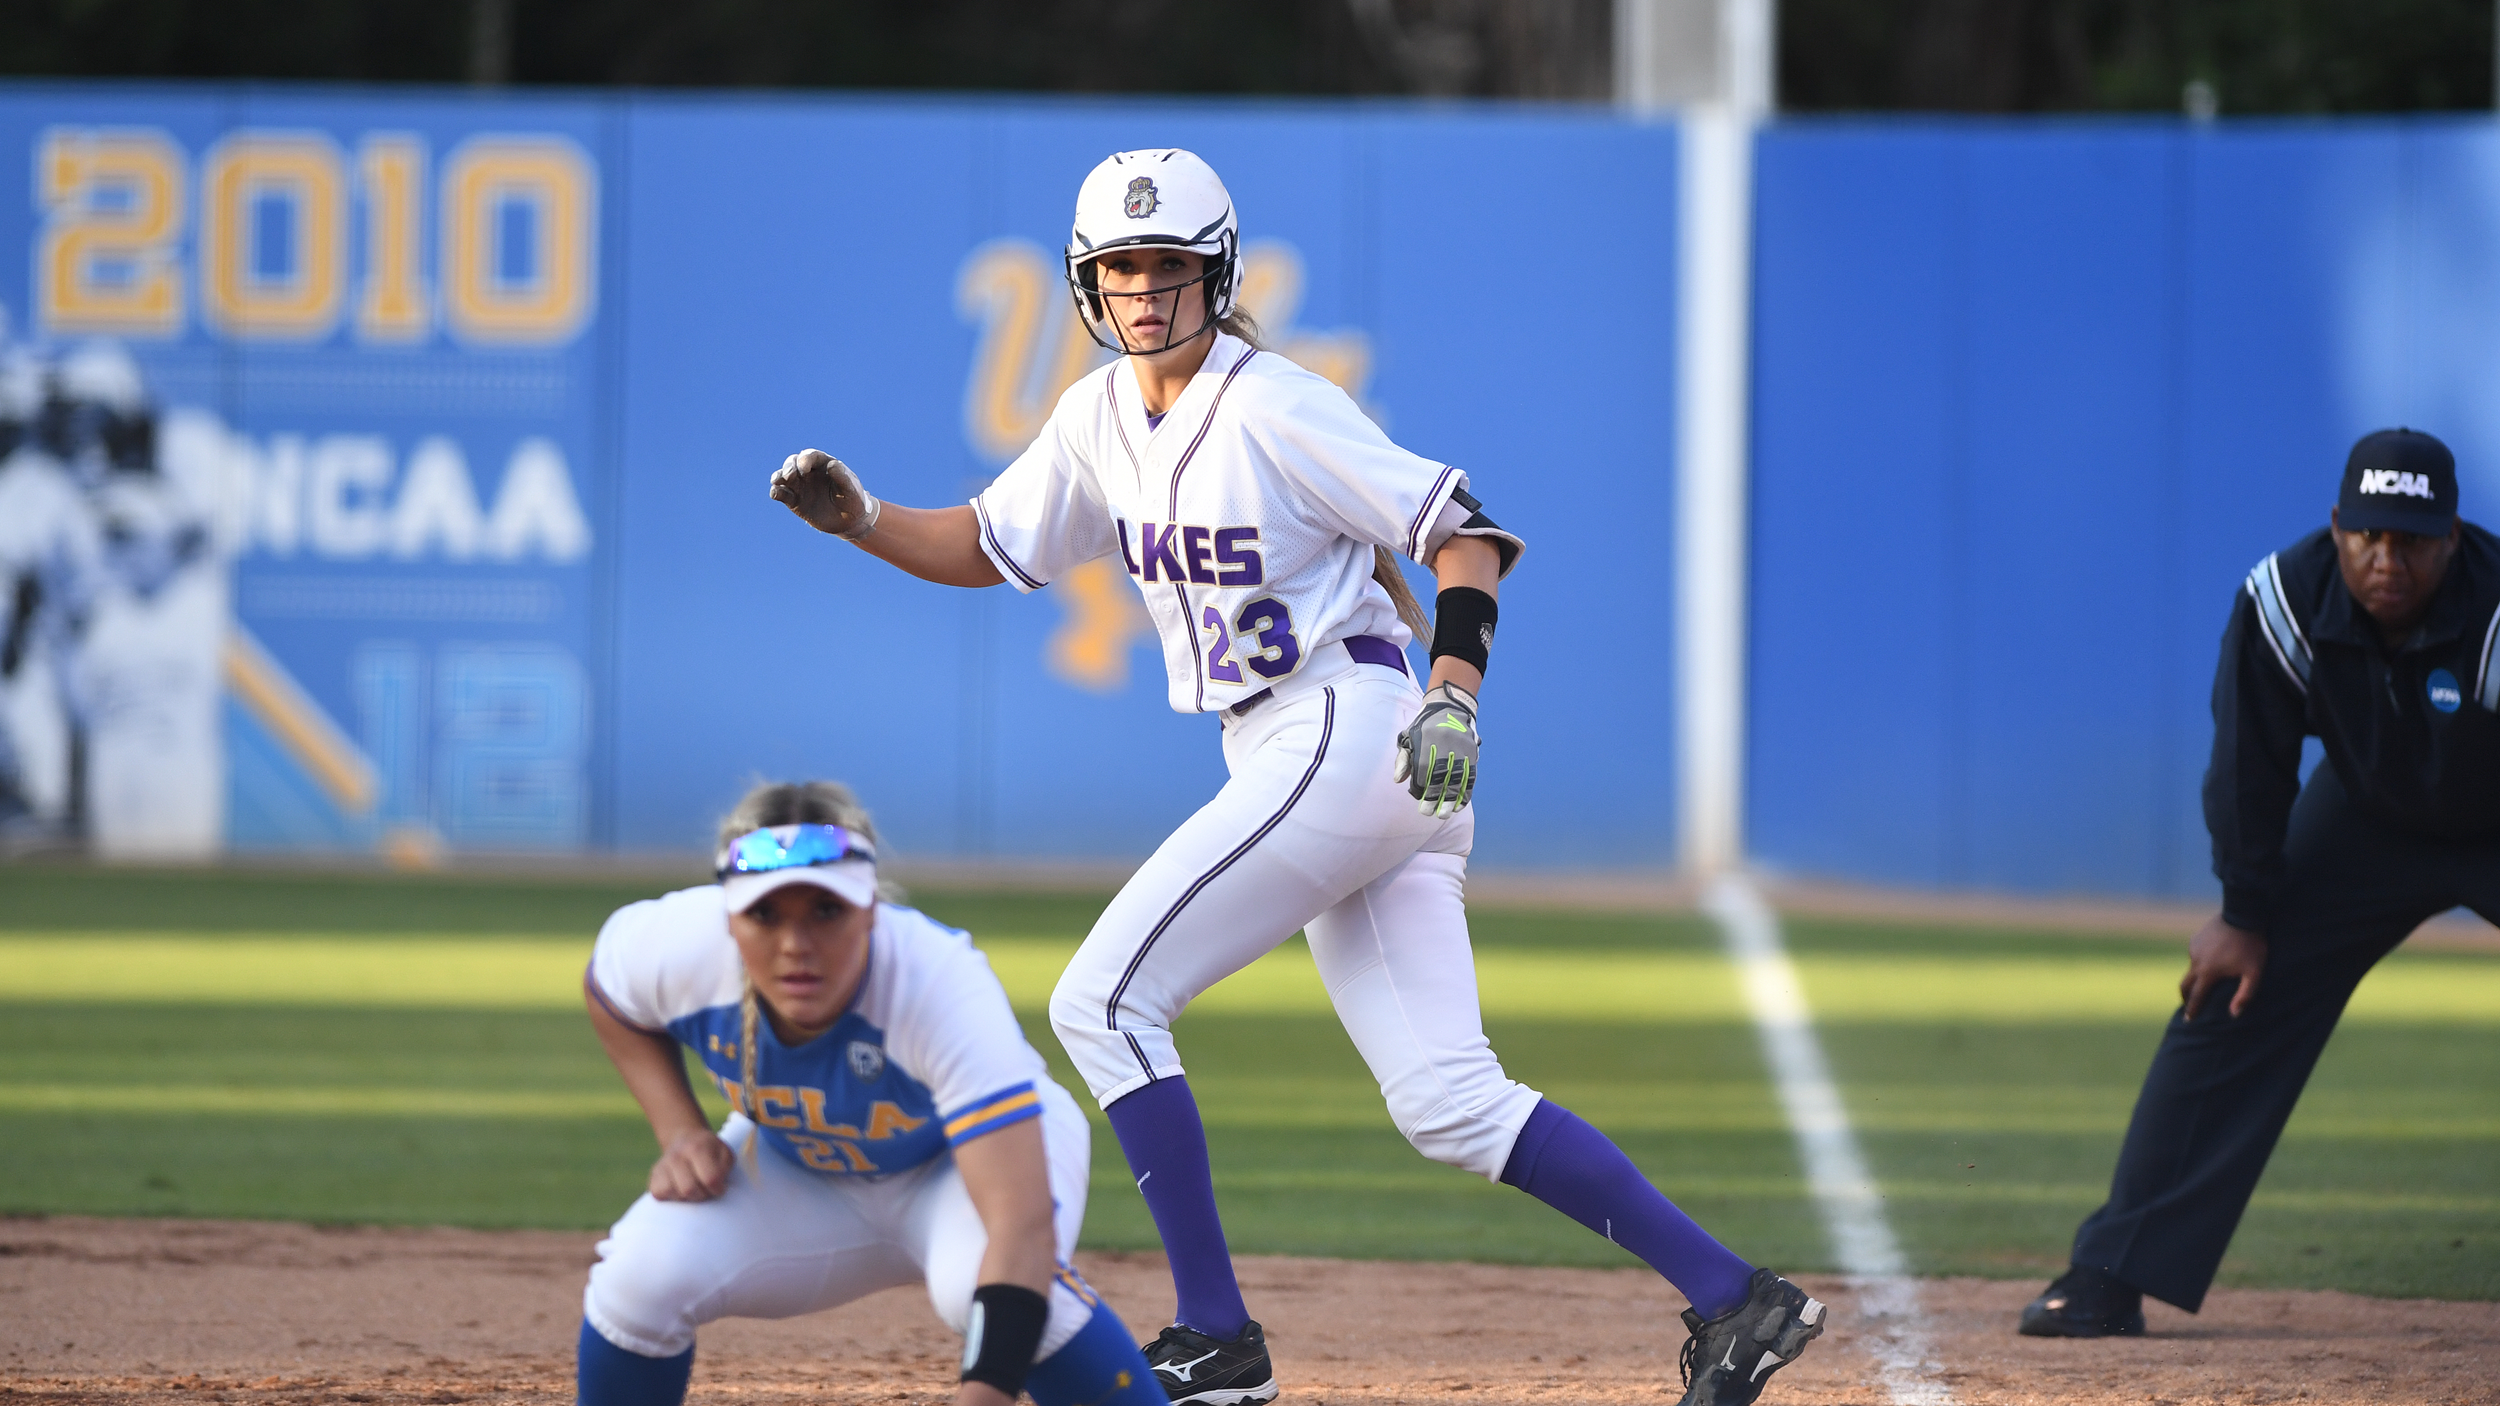 Softball: Dukes' Season Ends in L.A. Super Regional